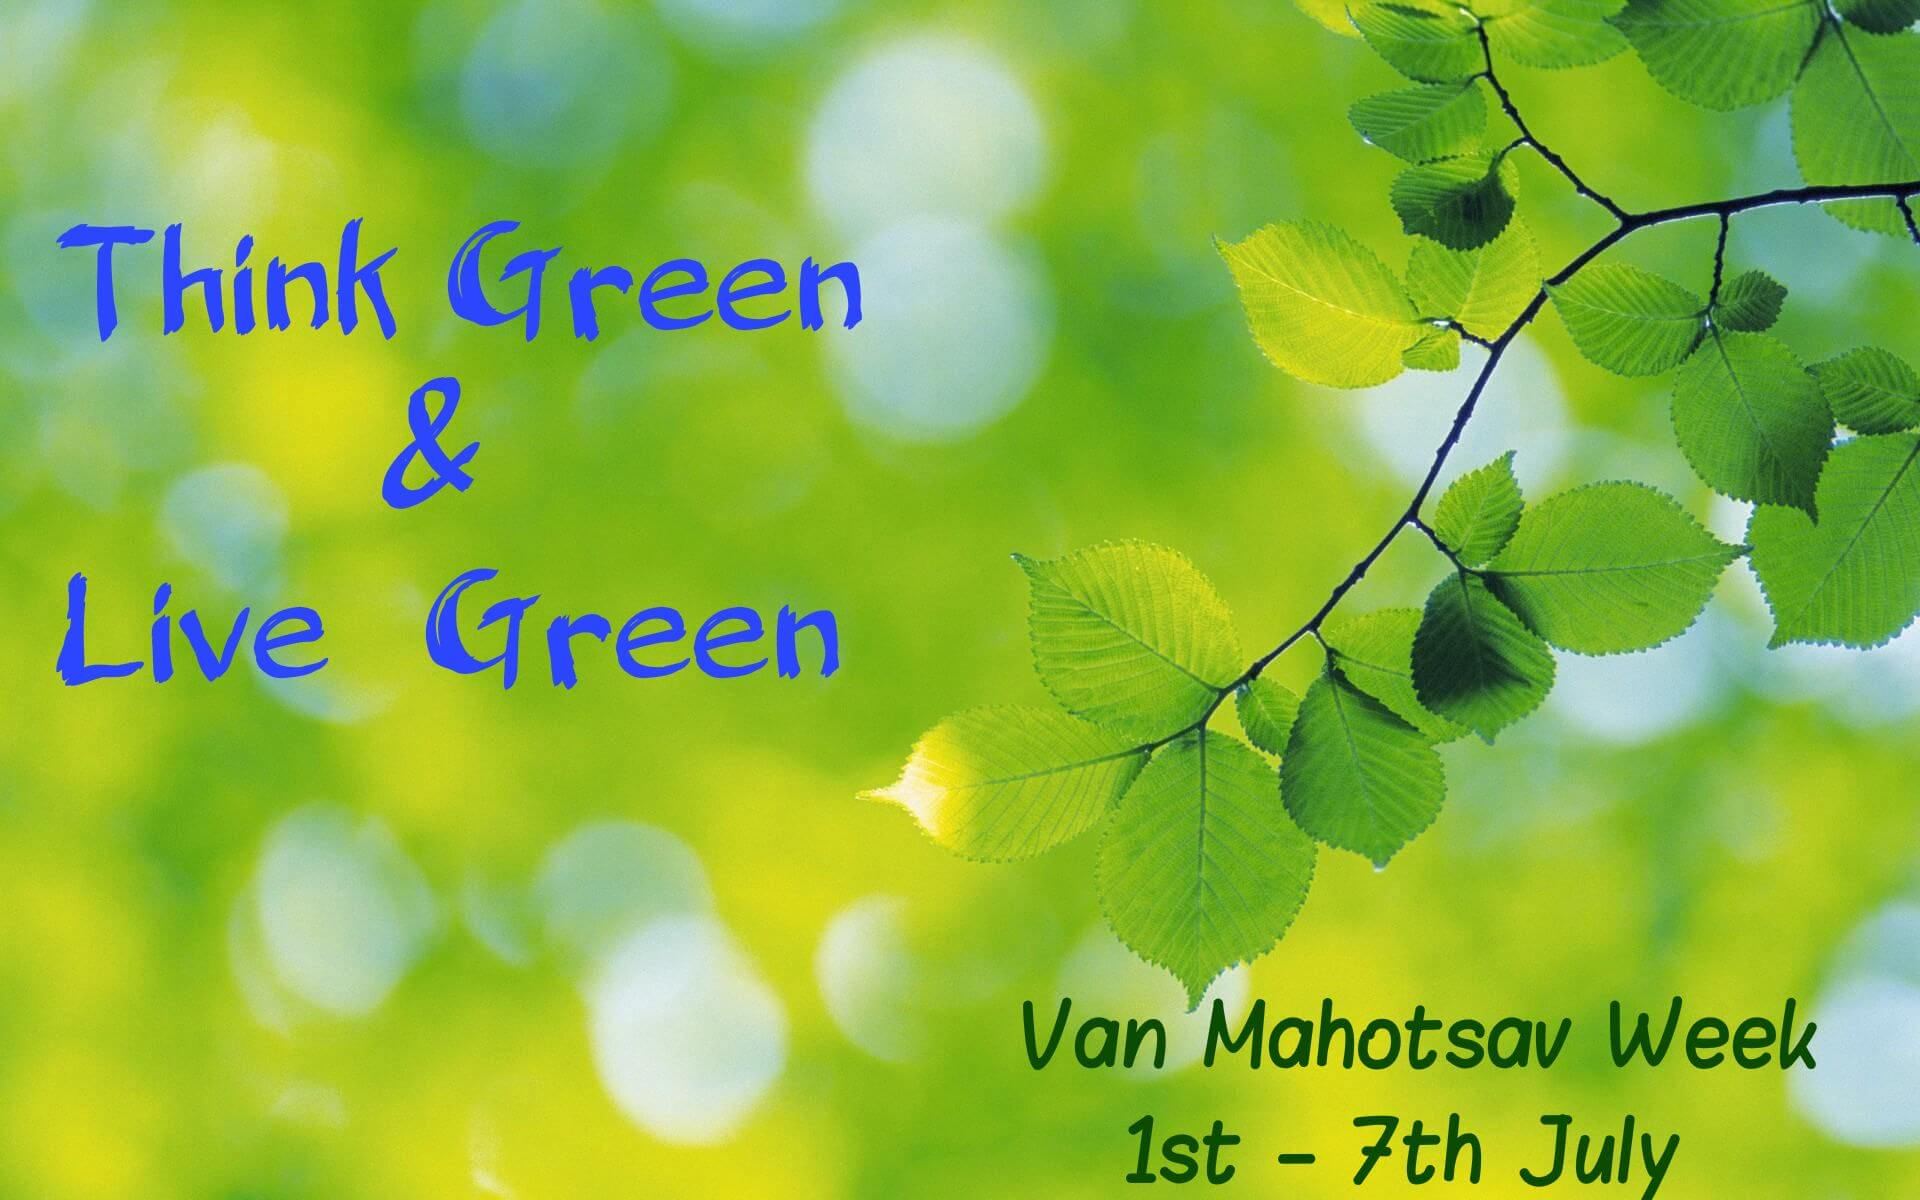 van mahotsav day tree planting think live green wallpaper